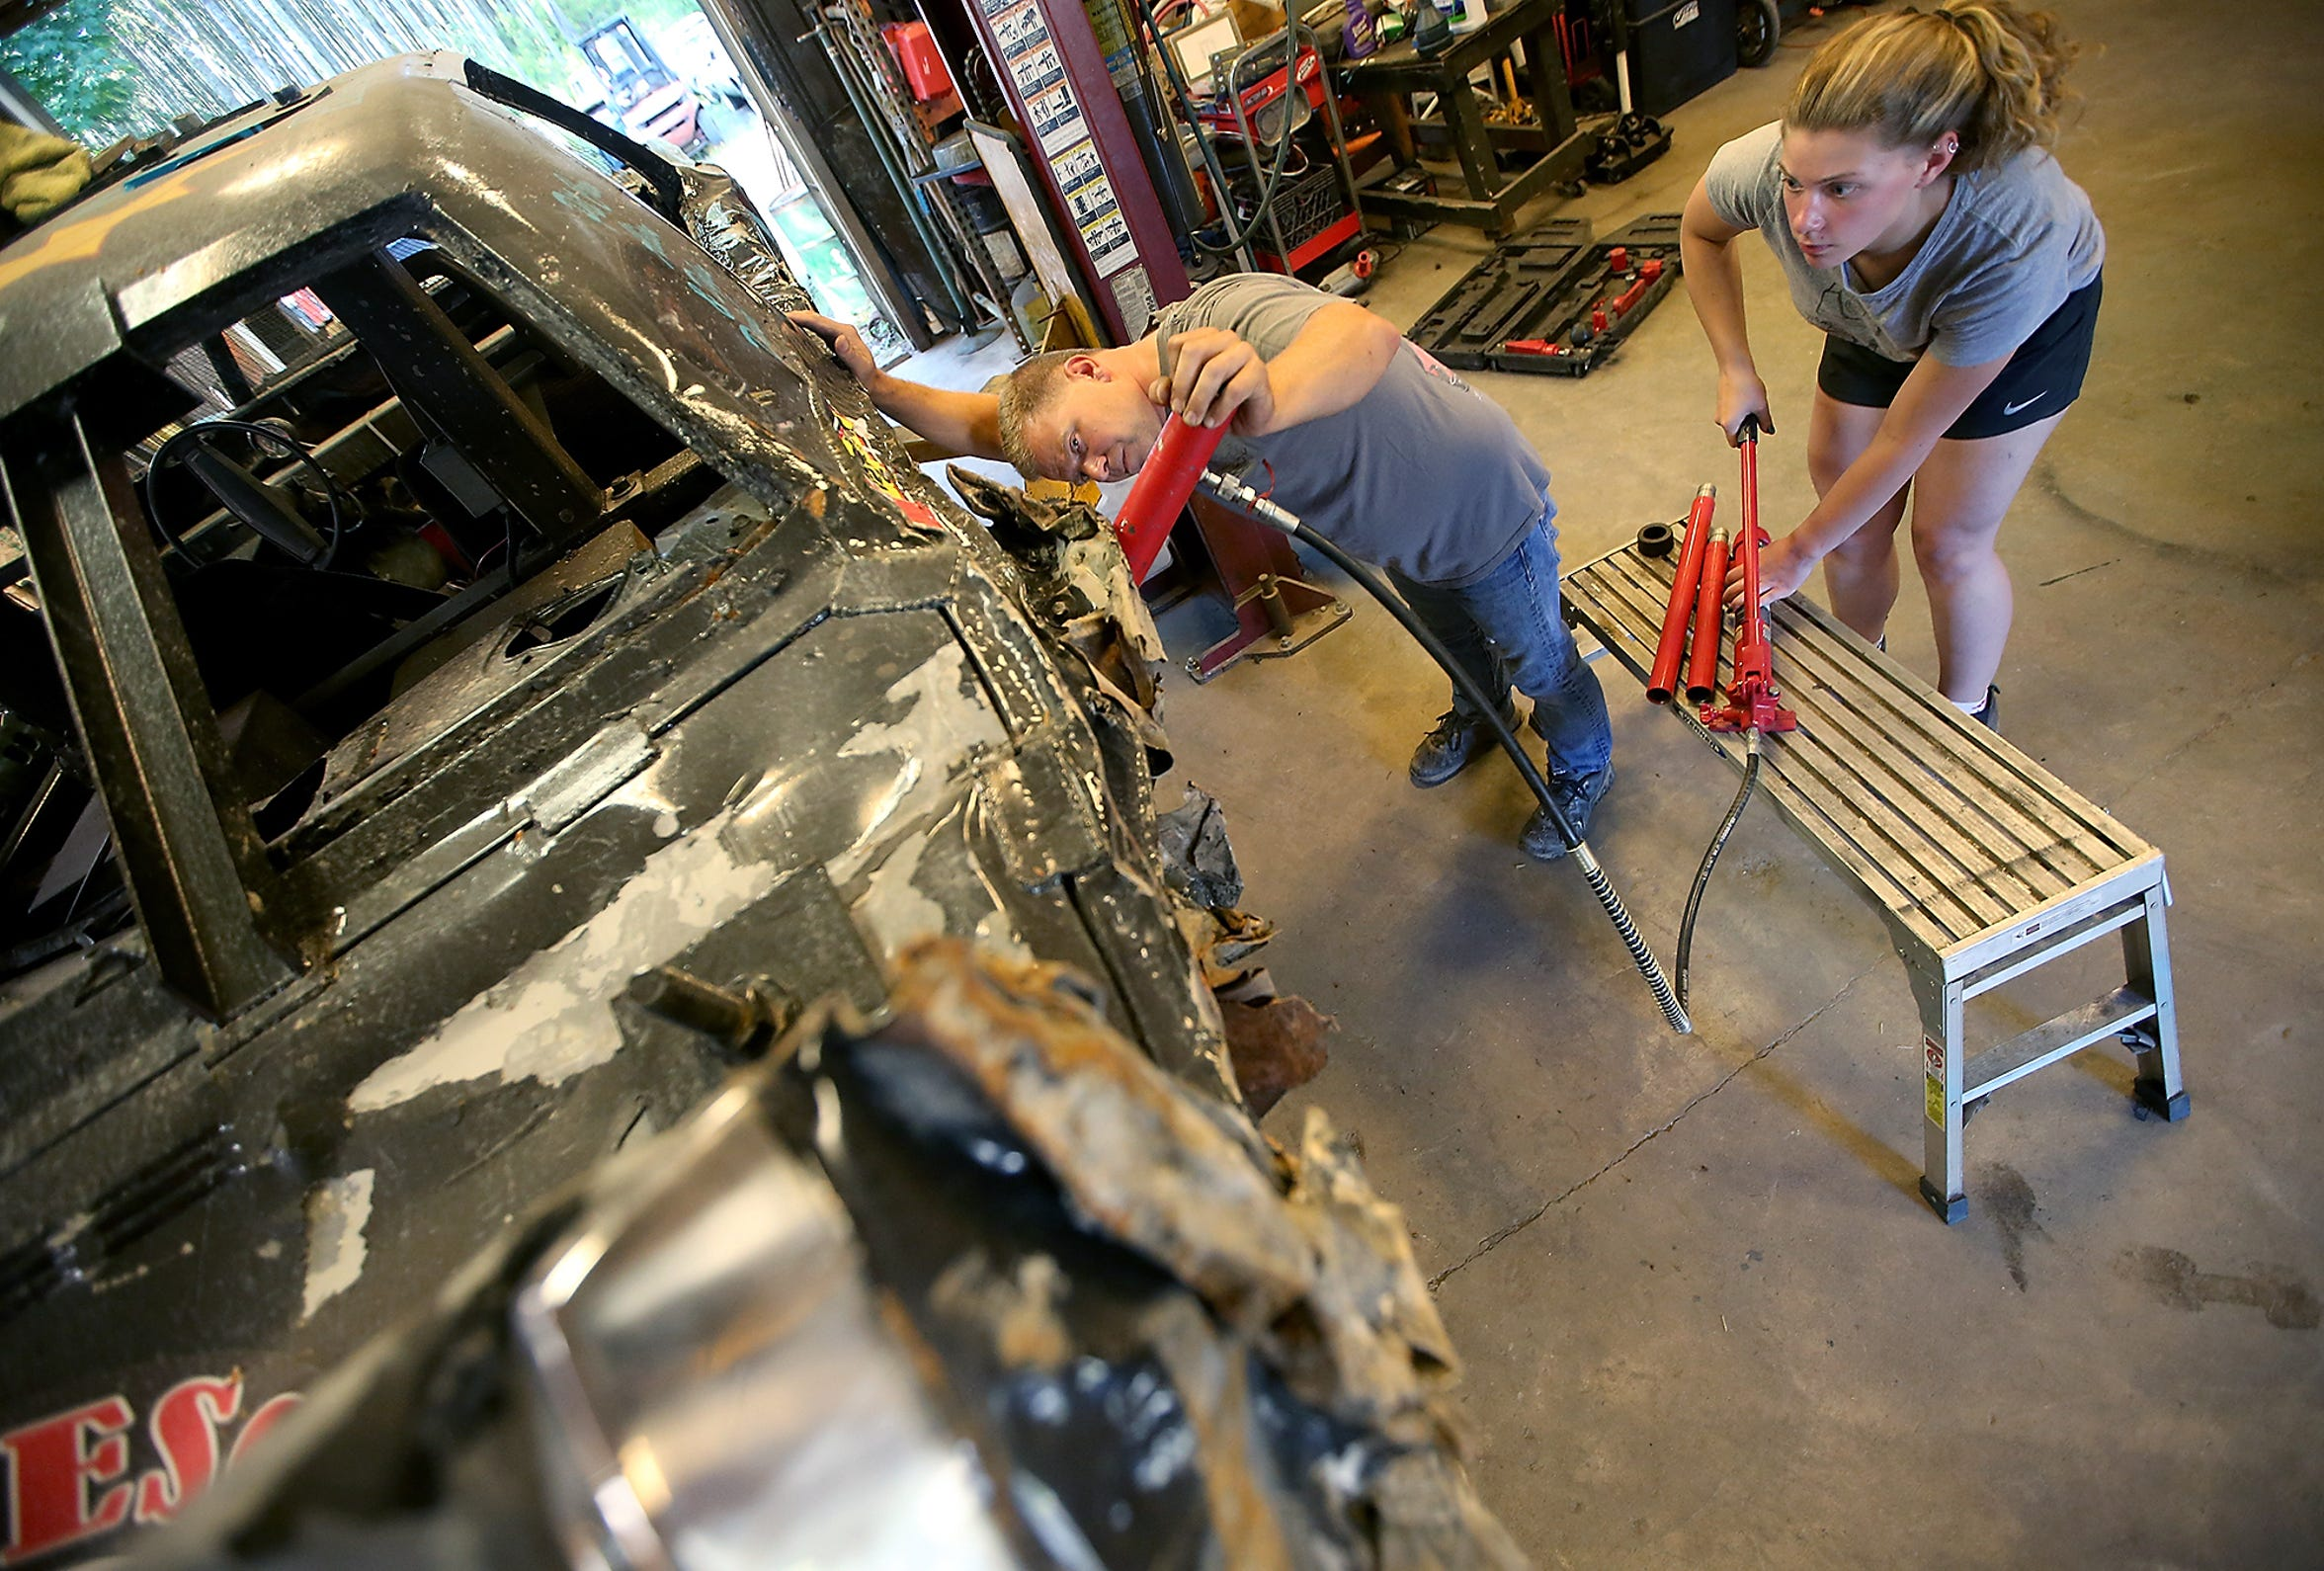 KDDA President Dan Pieze and his daughter, Alison, work on Pieze's car at their Port Orchard home on July 25. Acquiring, fortifying and repairing derby cars can become an obsession for derby drivers.